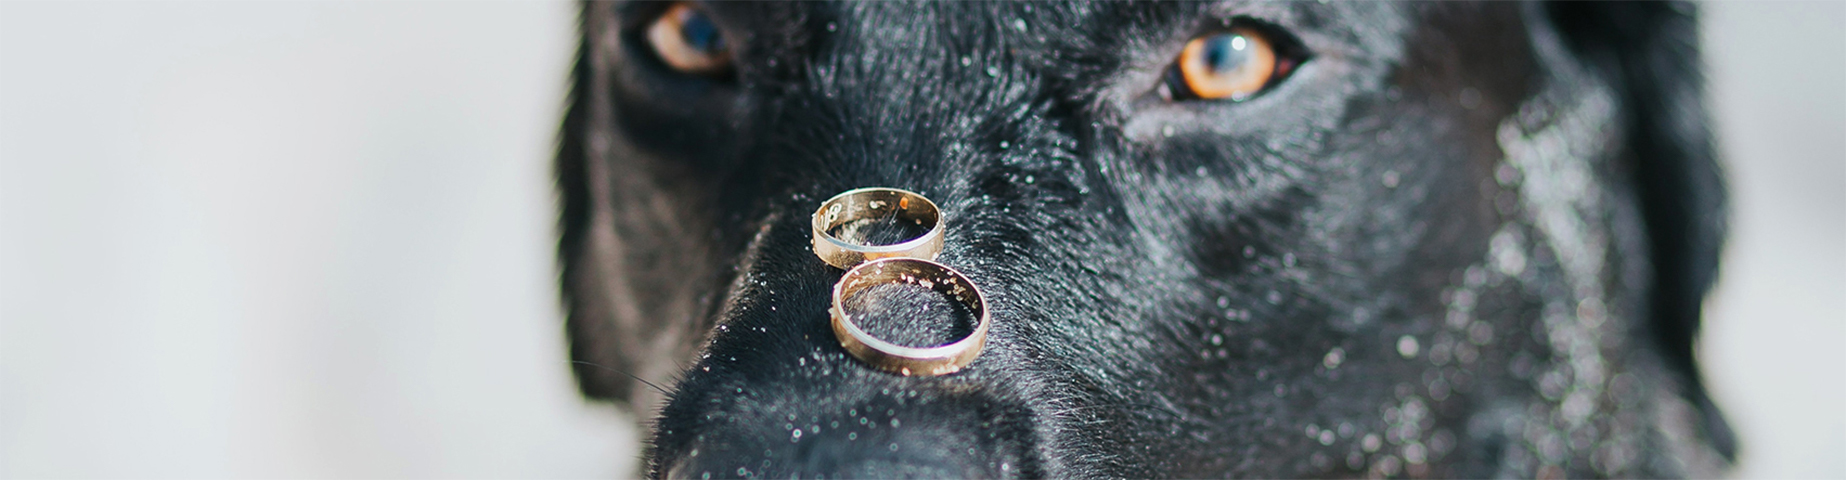 Dog with Rings